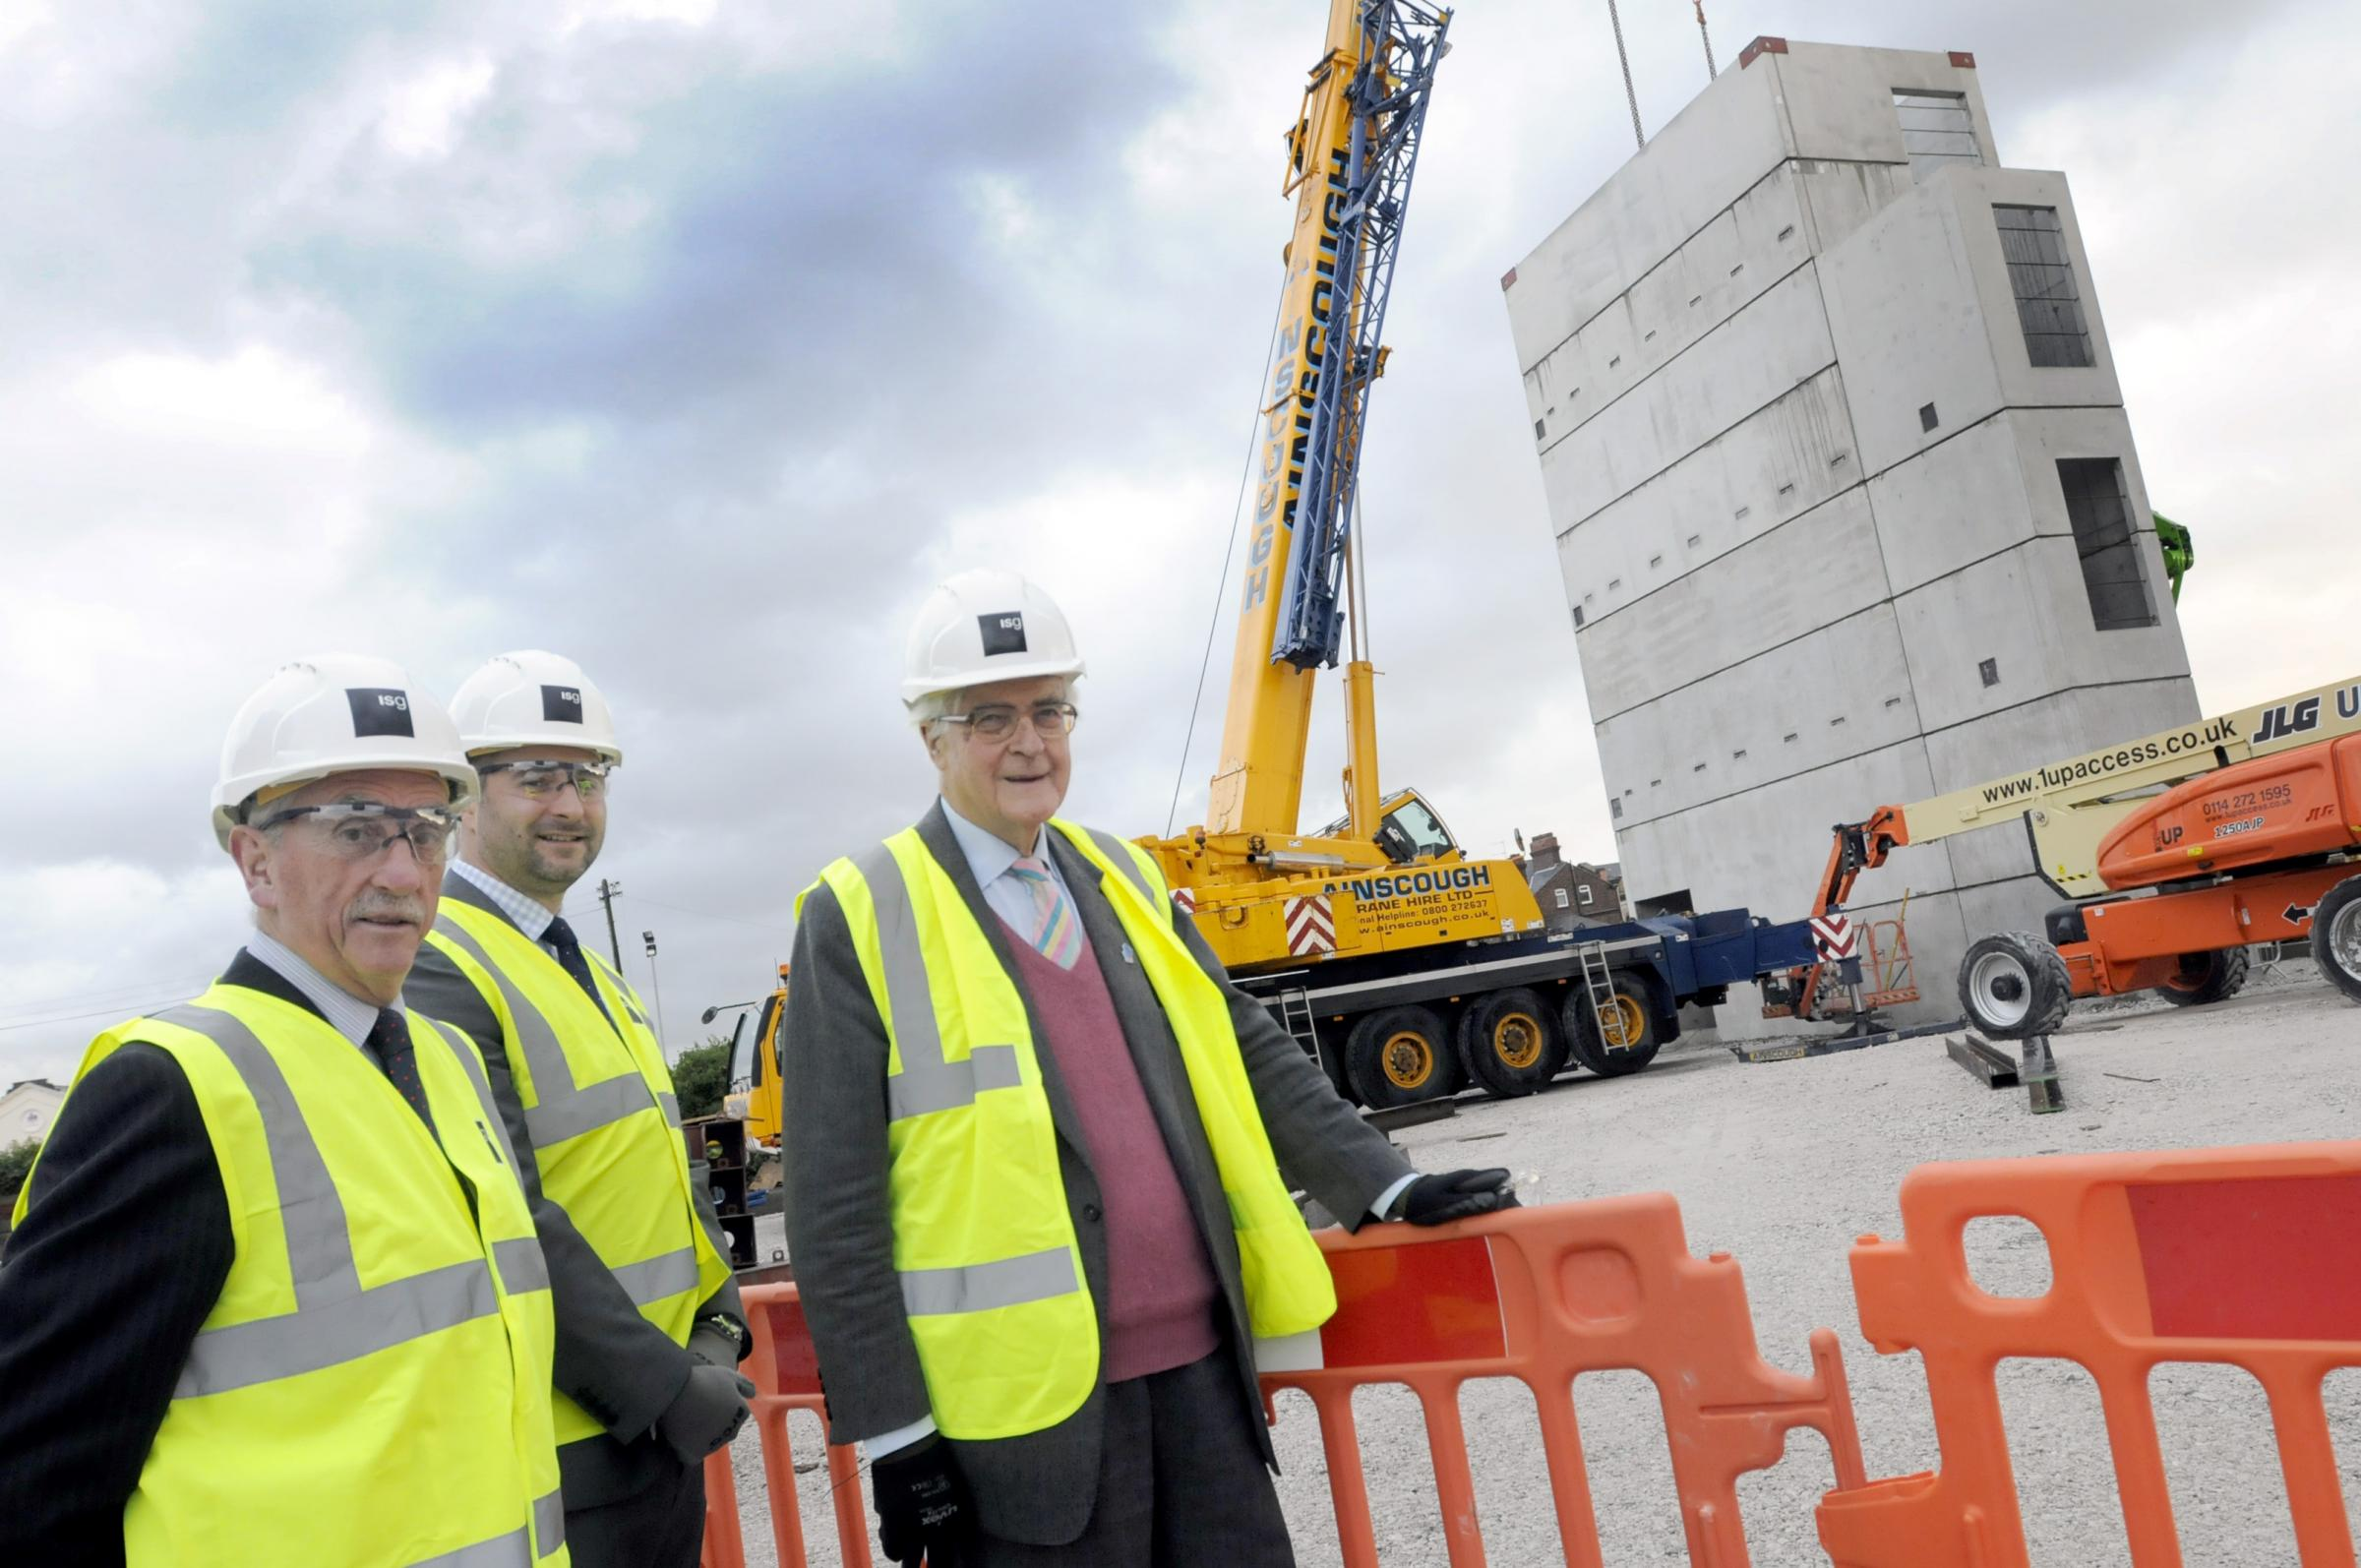 Warrington Borough Council leader Cllr Terry O' Neill, University Technical College principal Lee Barber and Lord Kenneth Baker visited the Dallam Lane site yesterday.